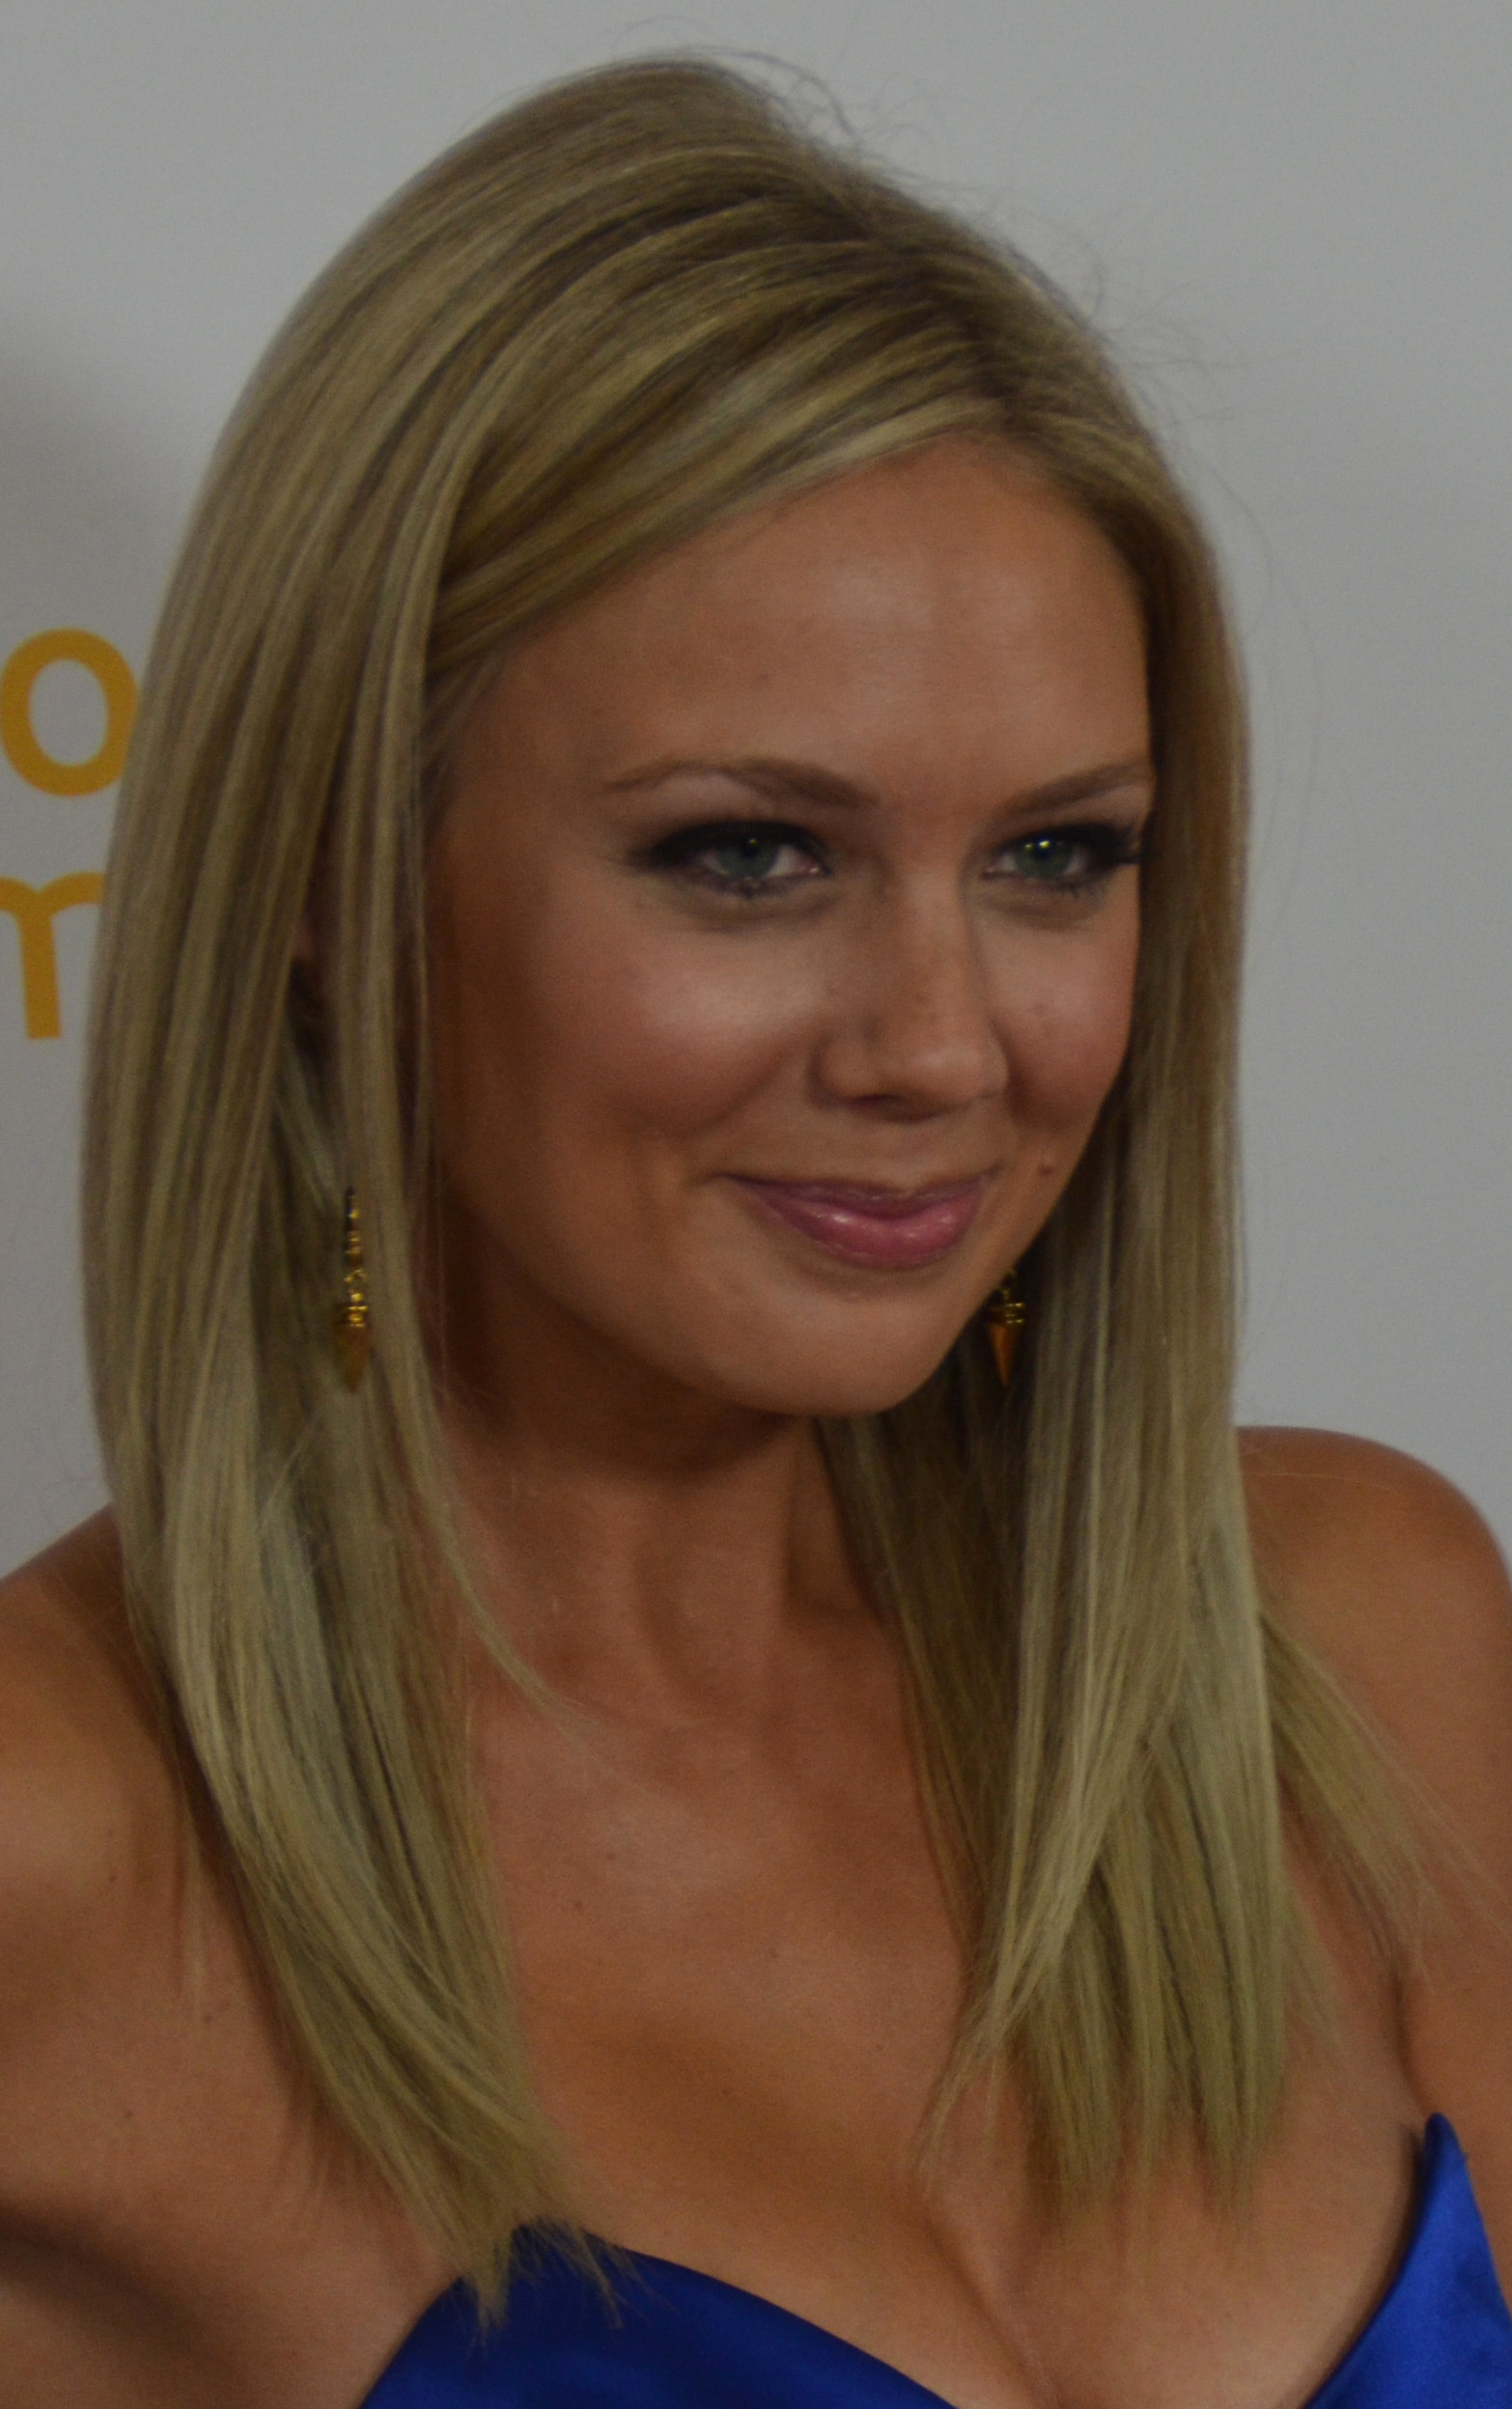 melissa ordway wikipedia georgia carter movies wiki again heights hollywood